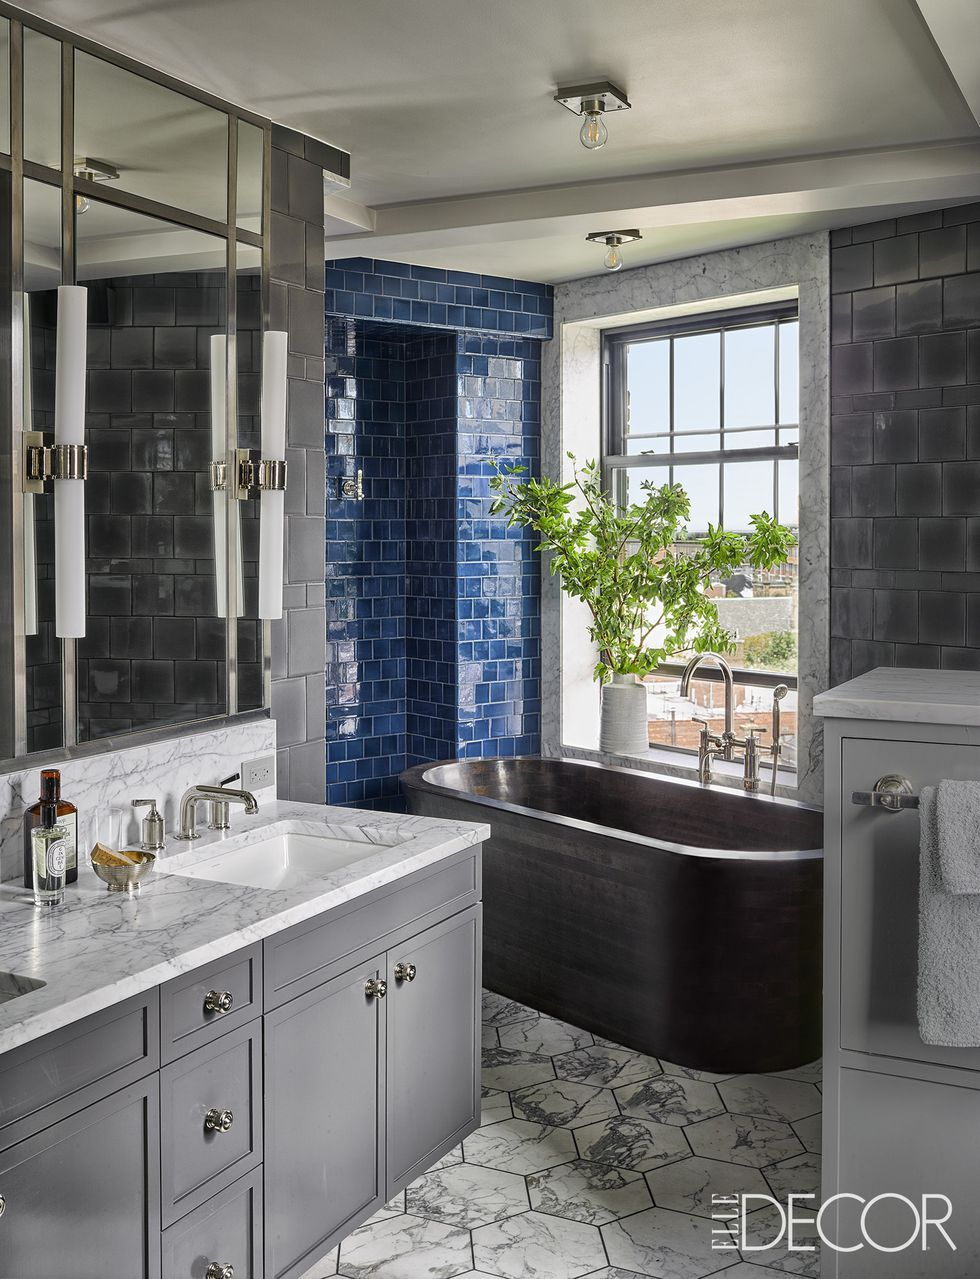 13 Blue Bathrooms Ideas - Blue Bathroom Decor Small Bathroom Designs Gray Blue on blue gray bathroom color schemes, blue gray bathroom cabinets, blue gray tile bathroom, blue gray kitchen ideas, blue gray living room decorating ideas,